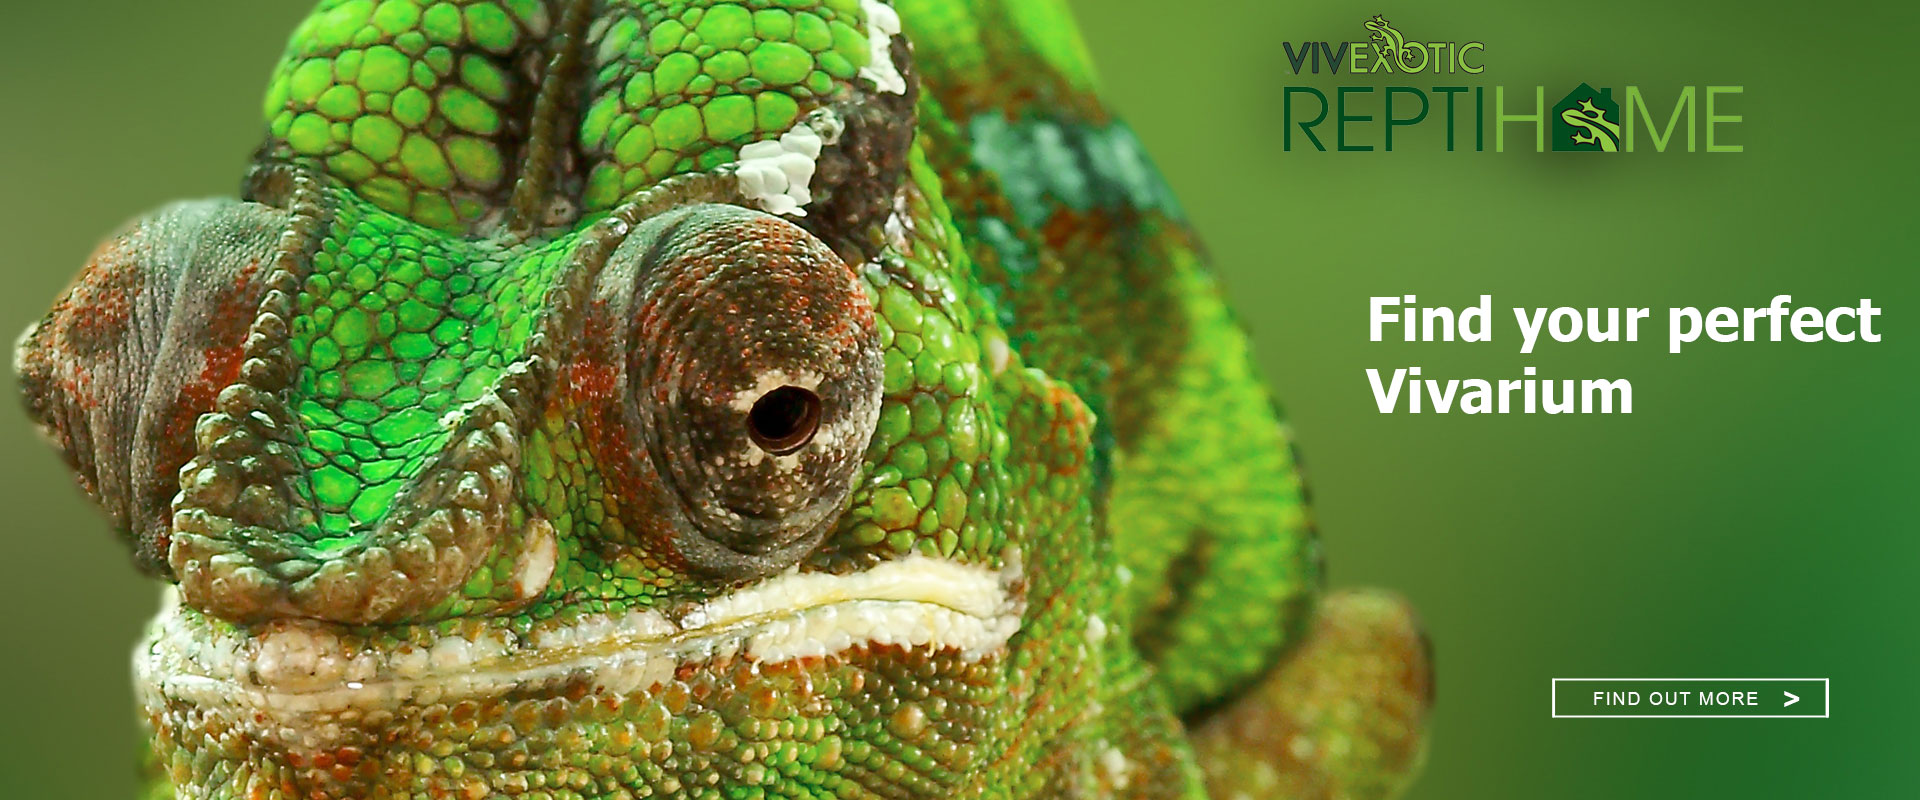 Reptile Pet Stores Near Me